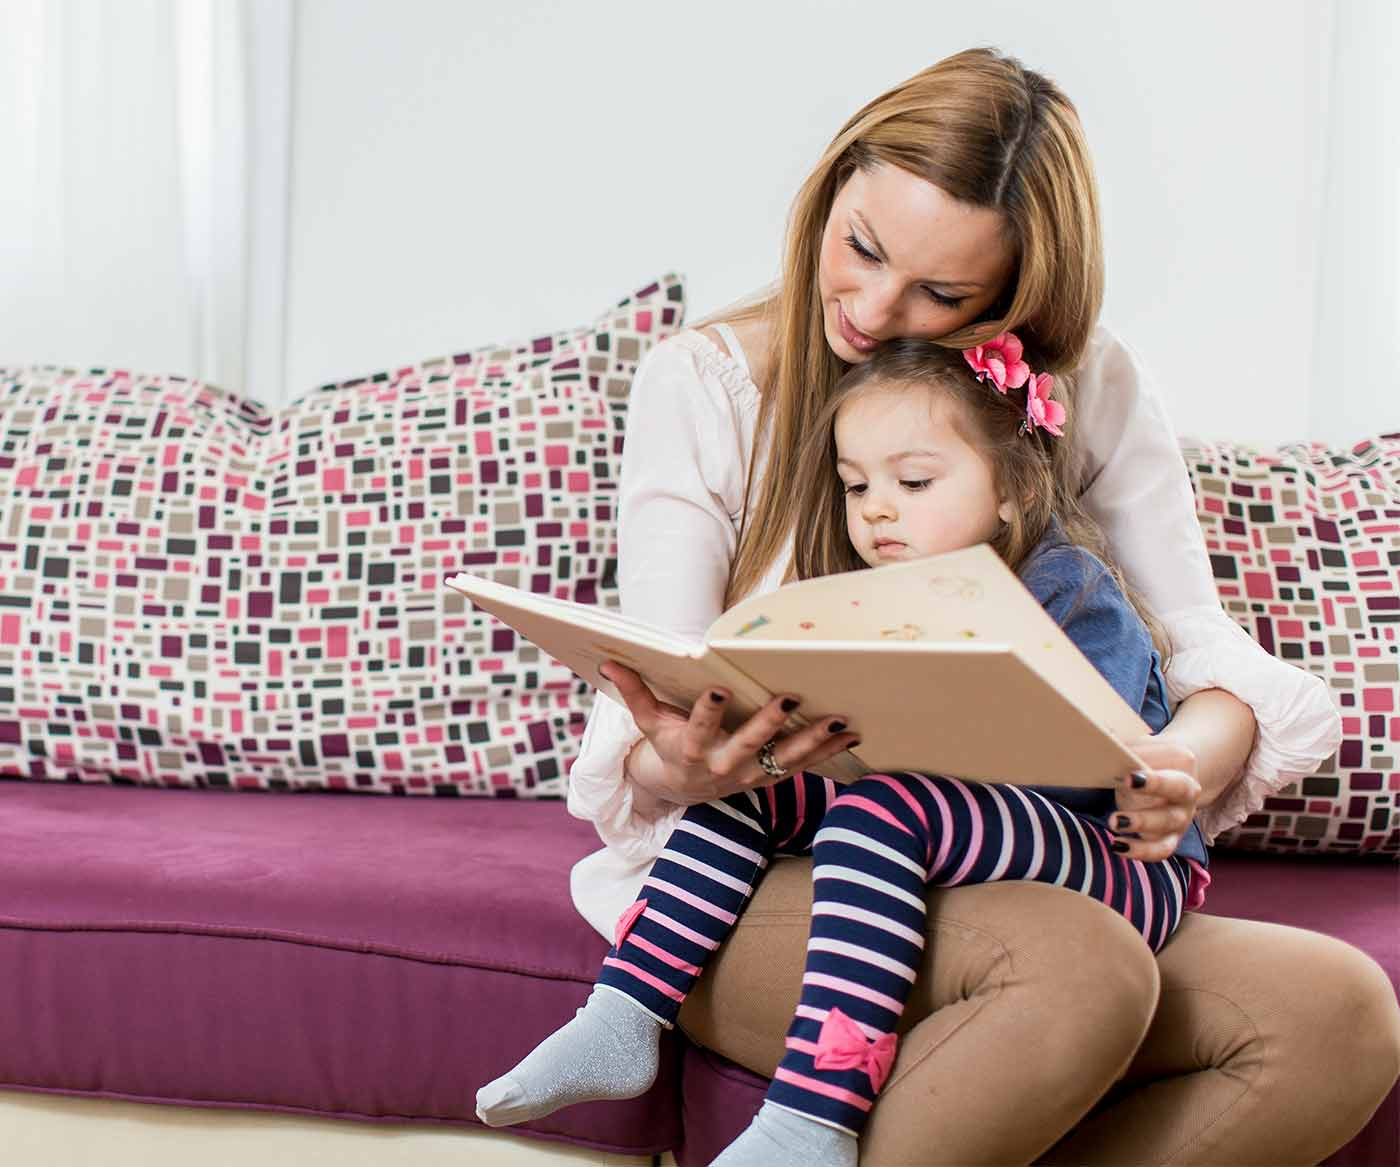 mom and girl reading on a couch